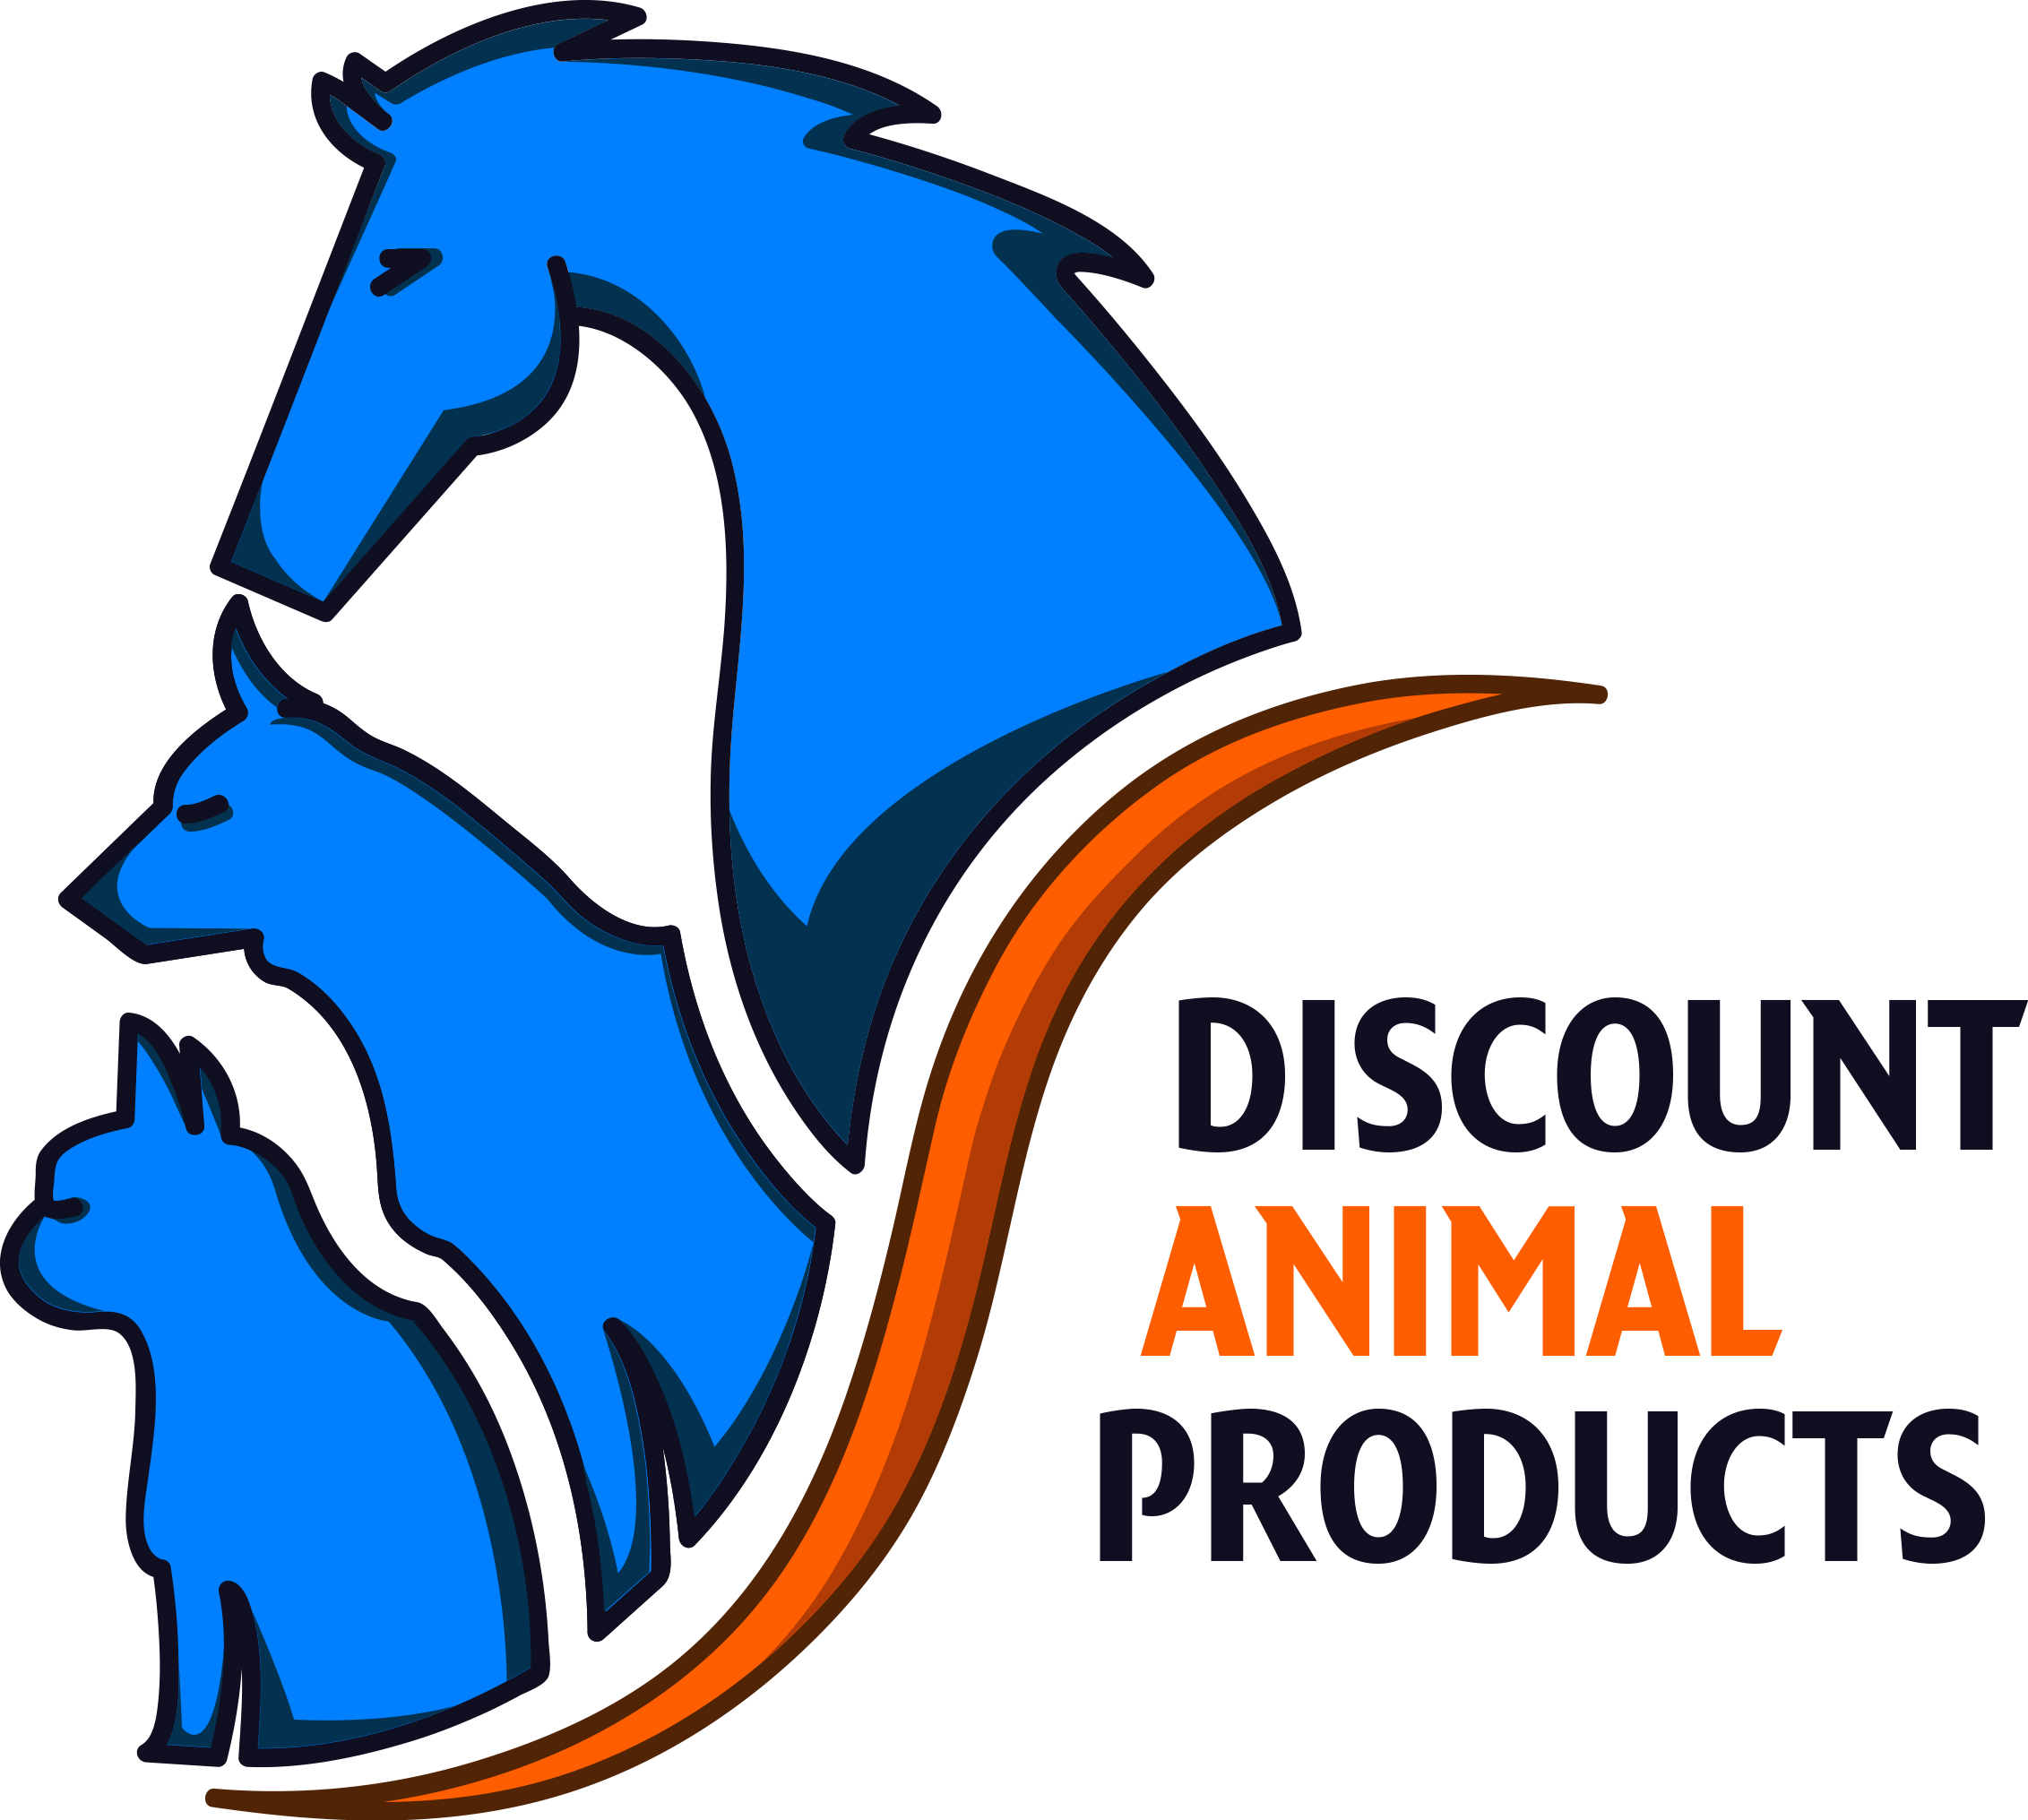 Discount Animal Products